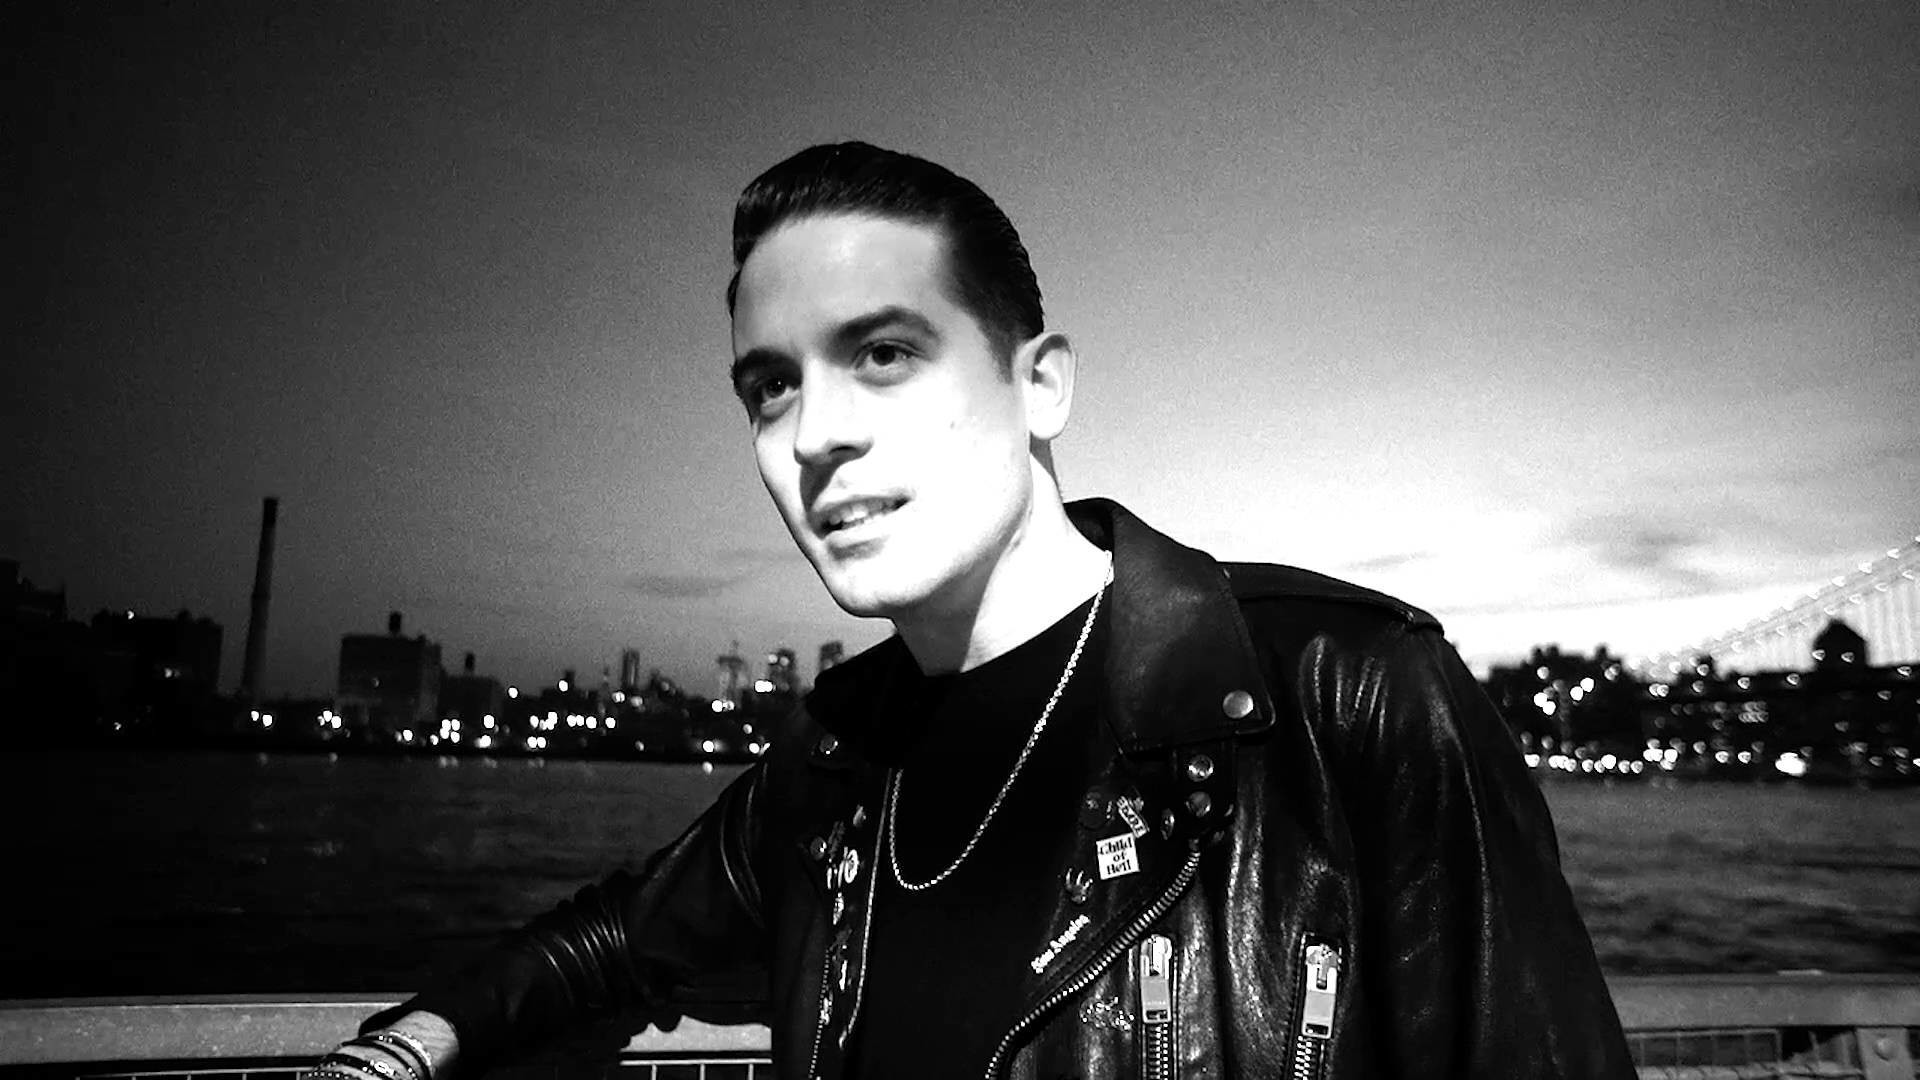 G-Eazy Wallpapers Images Photos Pictures Backgrounds